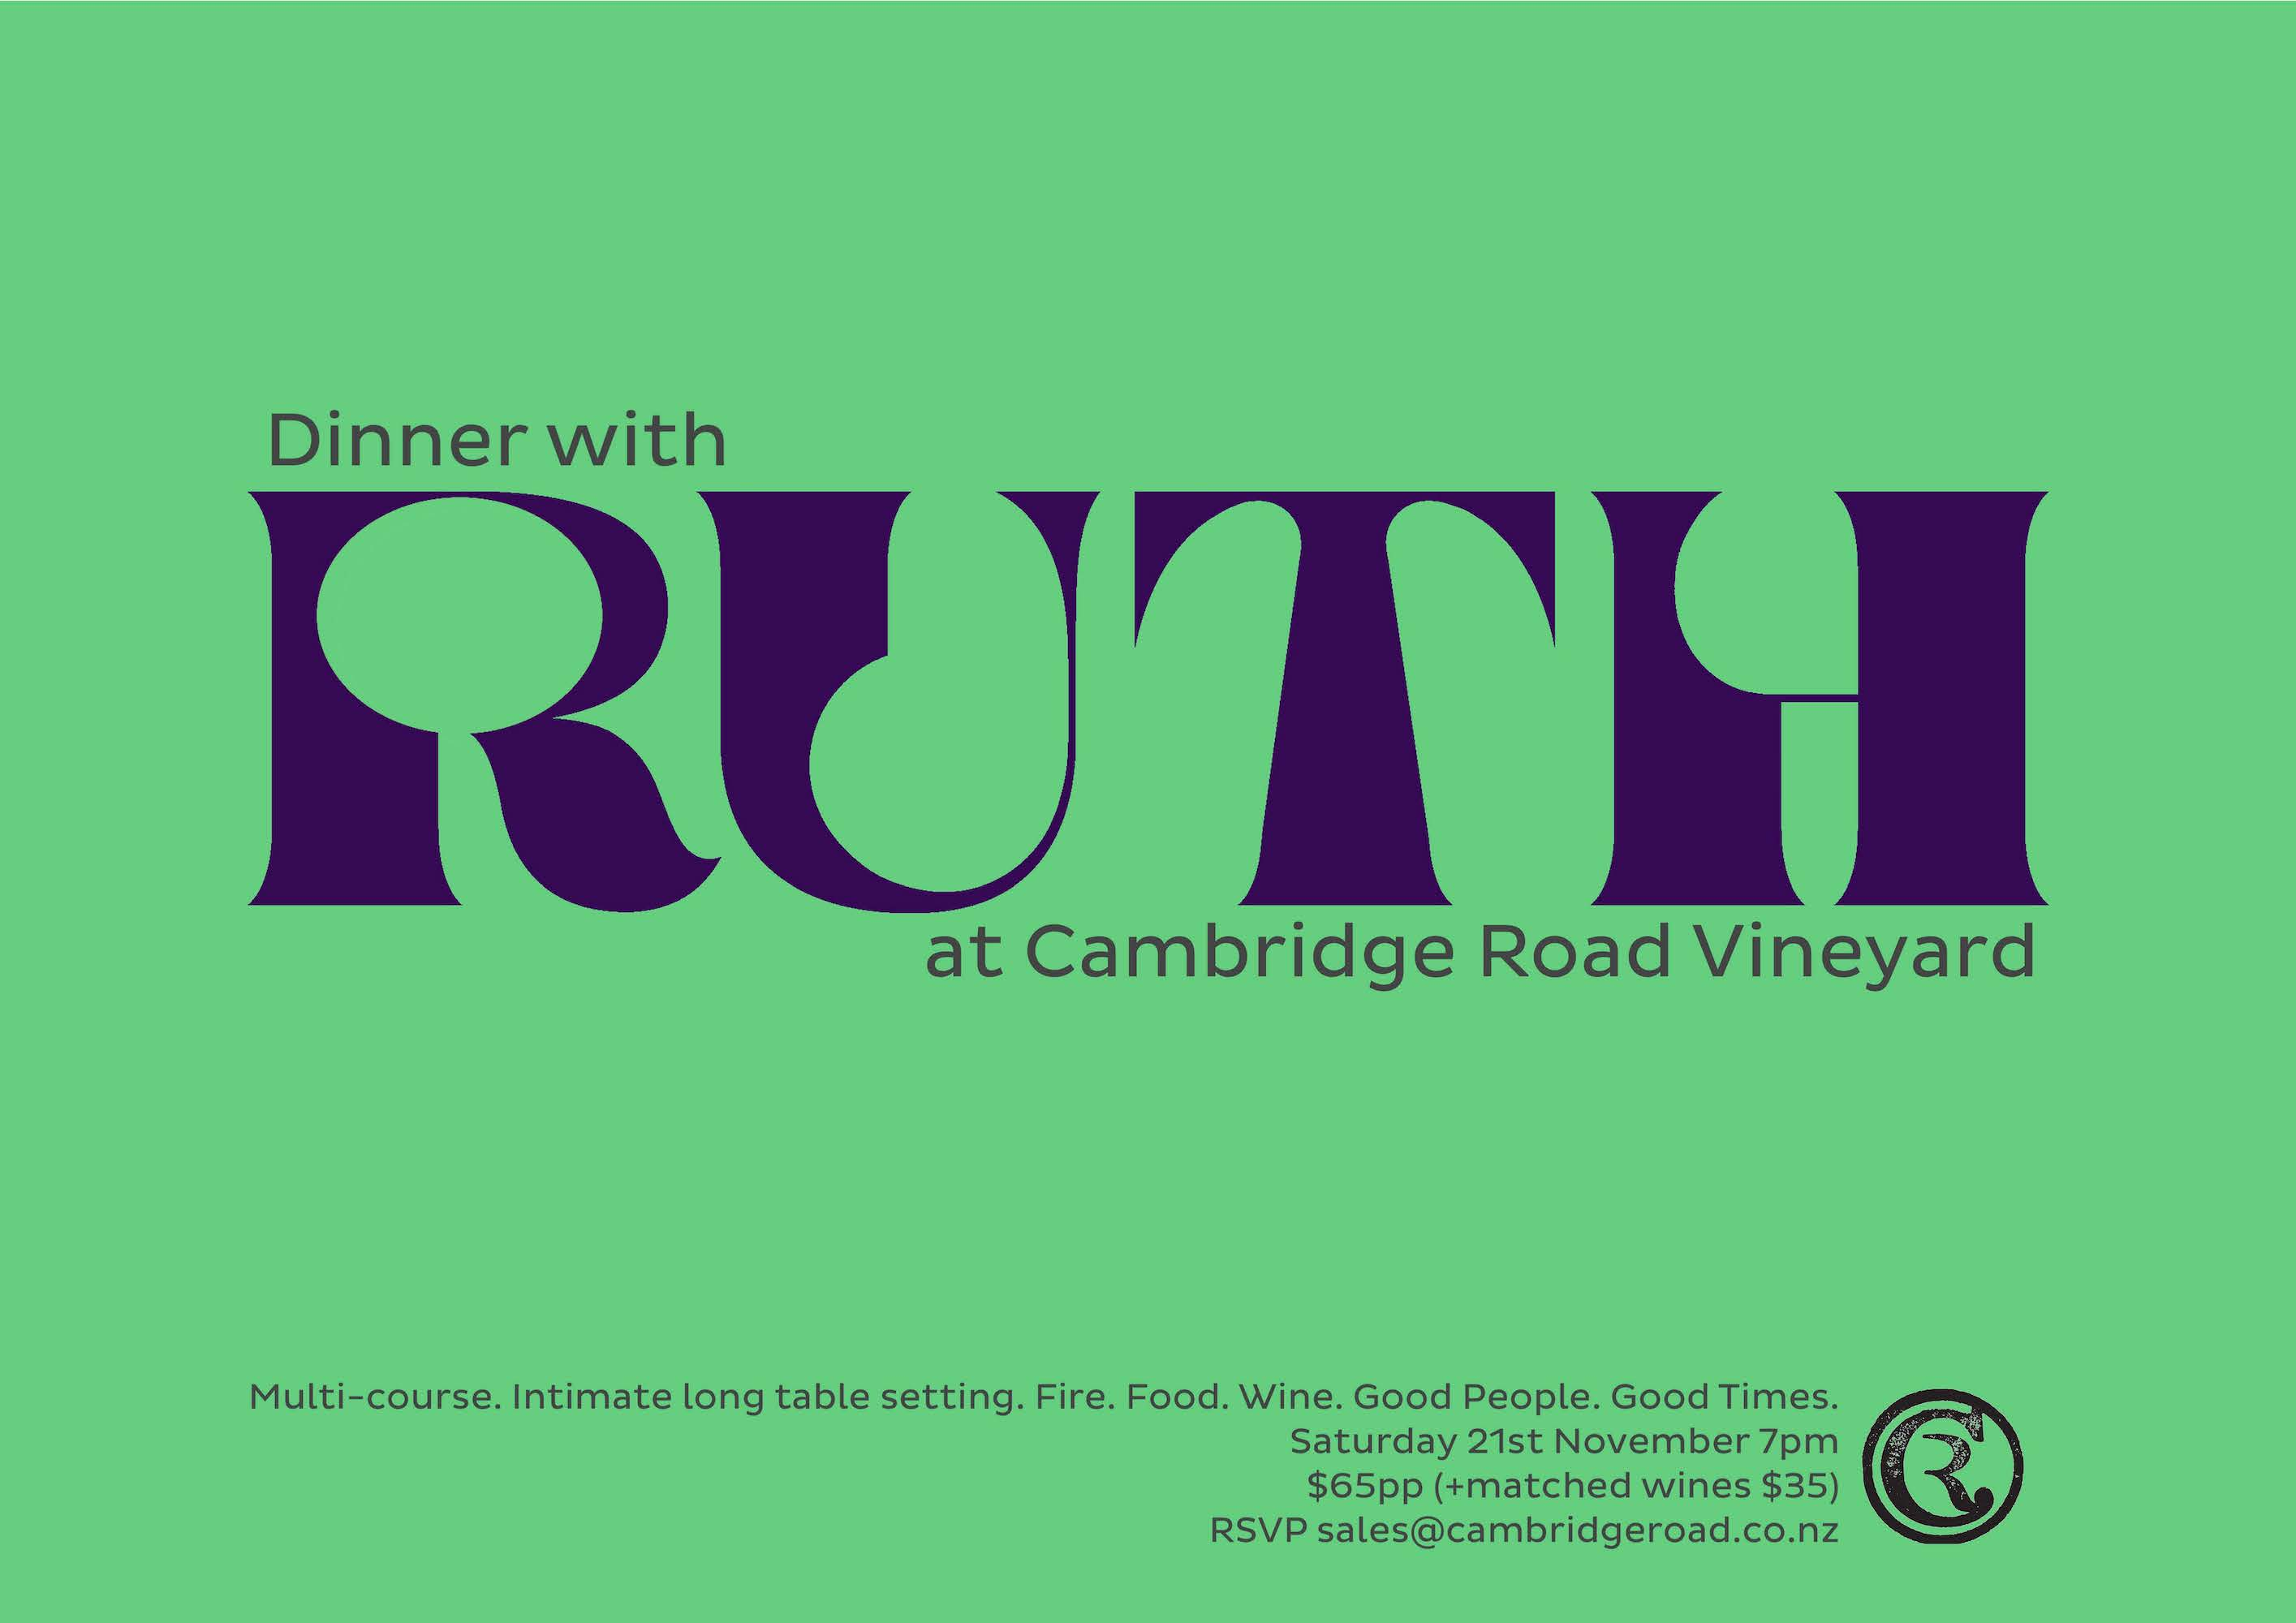 dinner-with-ruth-poster-final.jpg